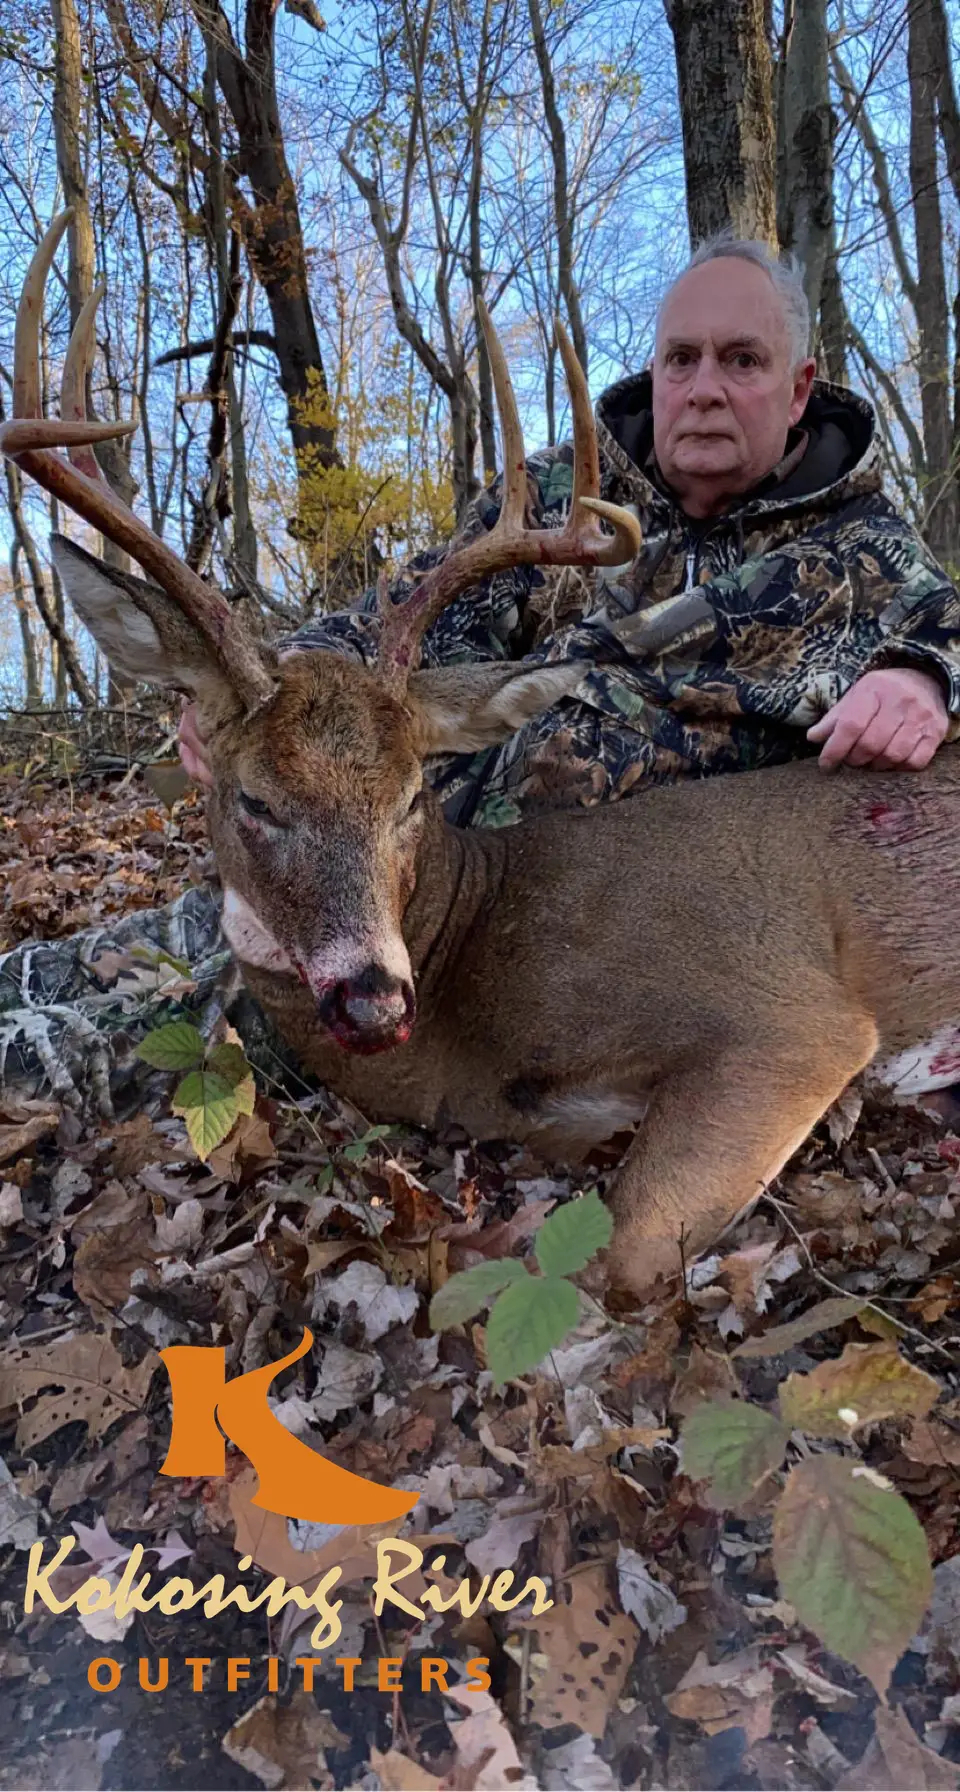 Guided Hunts In Ohio - Whitetail Hunting Ohio - Kokosing intended for Rut In Ohio 2021